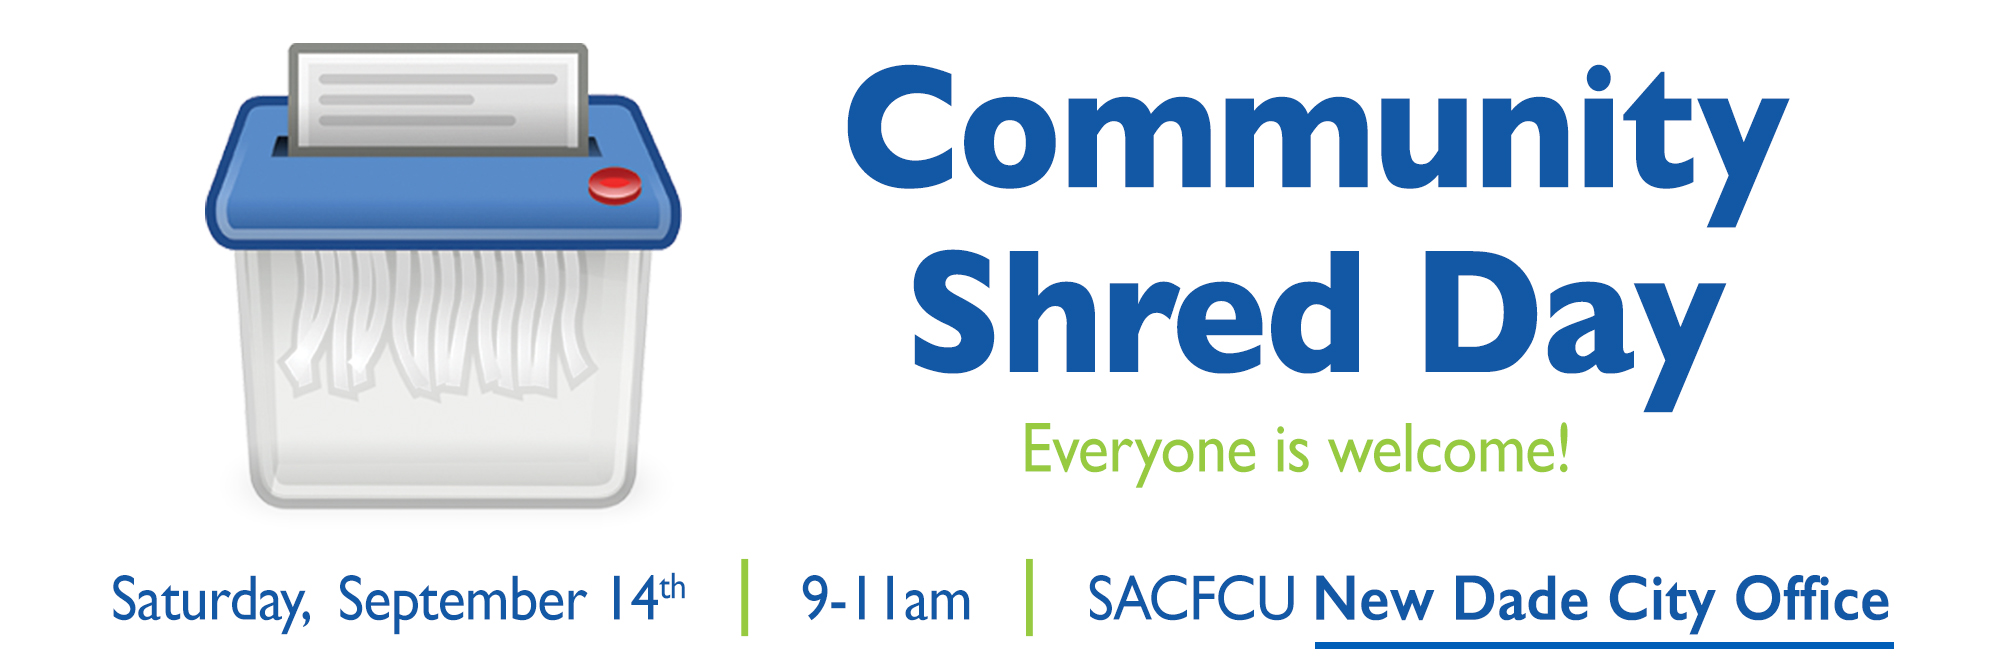 On Saturday, September 14th, SACFCU will be hosting a community shred day where everyone is welcome! The event will take place at the New Dade City Office between 9 & 11am